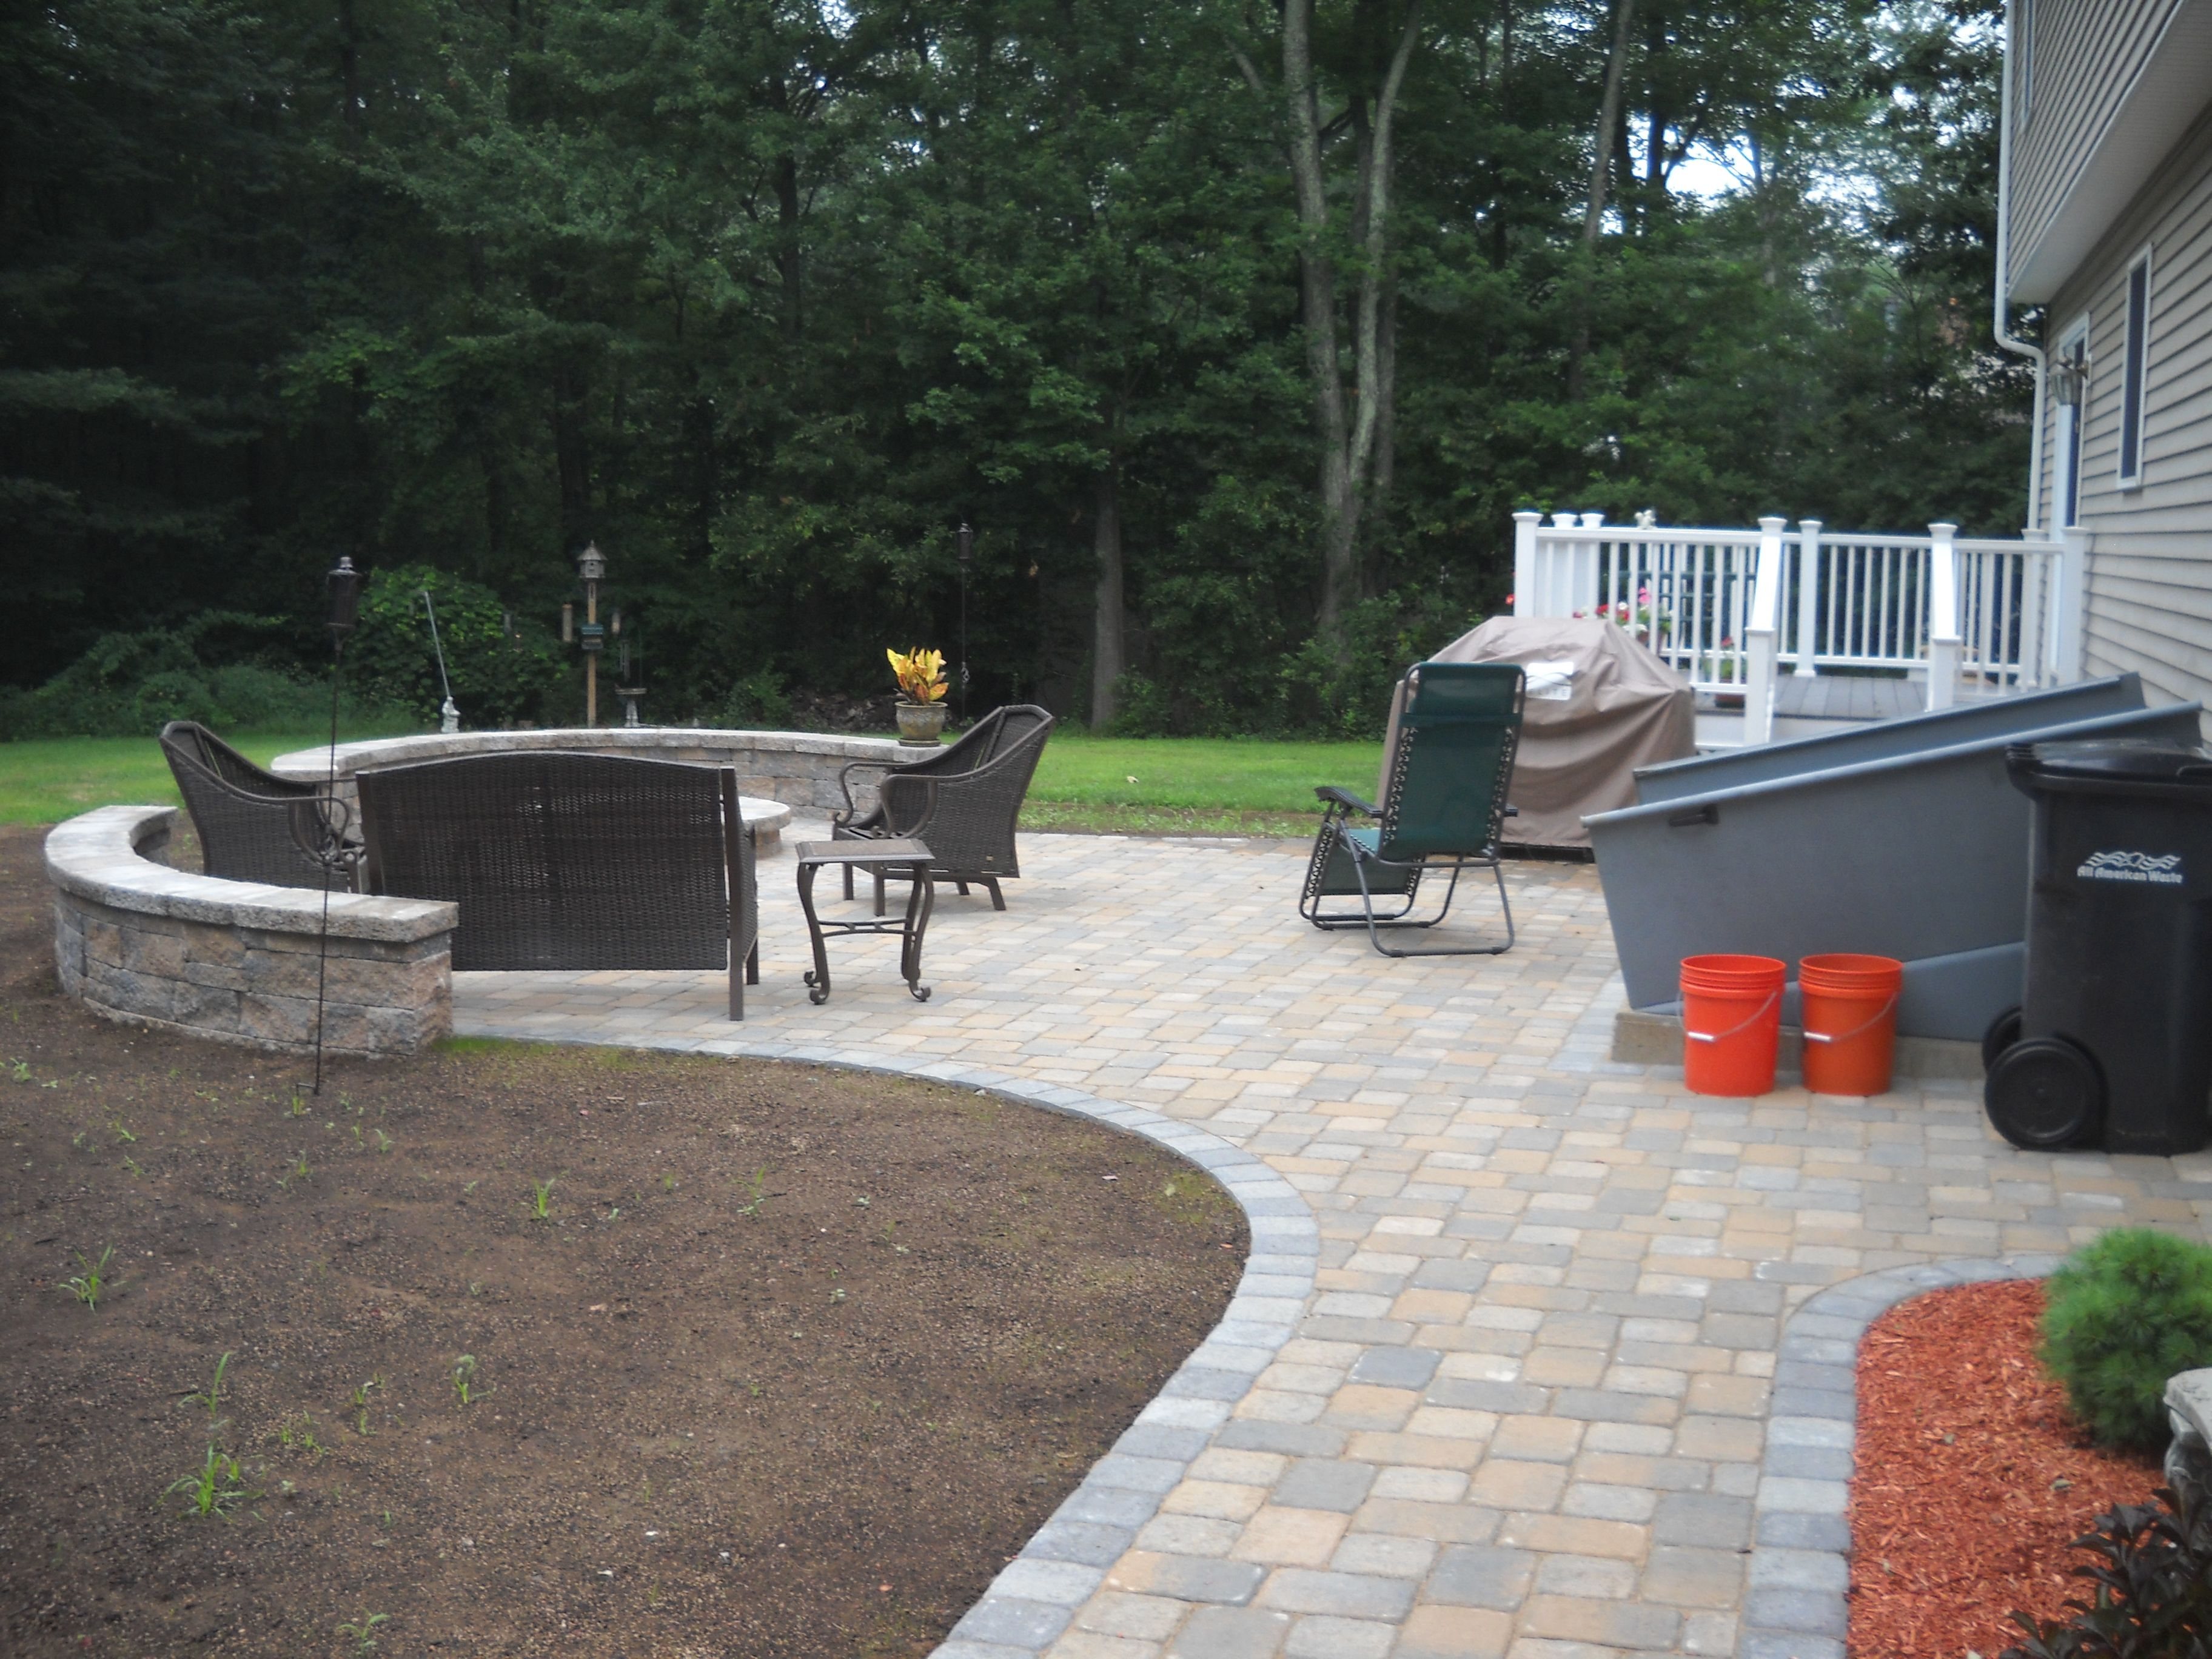 Dublin Cobble Paver Patio With Split Face West Virginia Stone Wall | Patio  | Pinterest | Stone Walls, Patios And Backyard